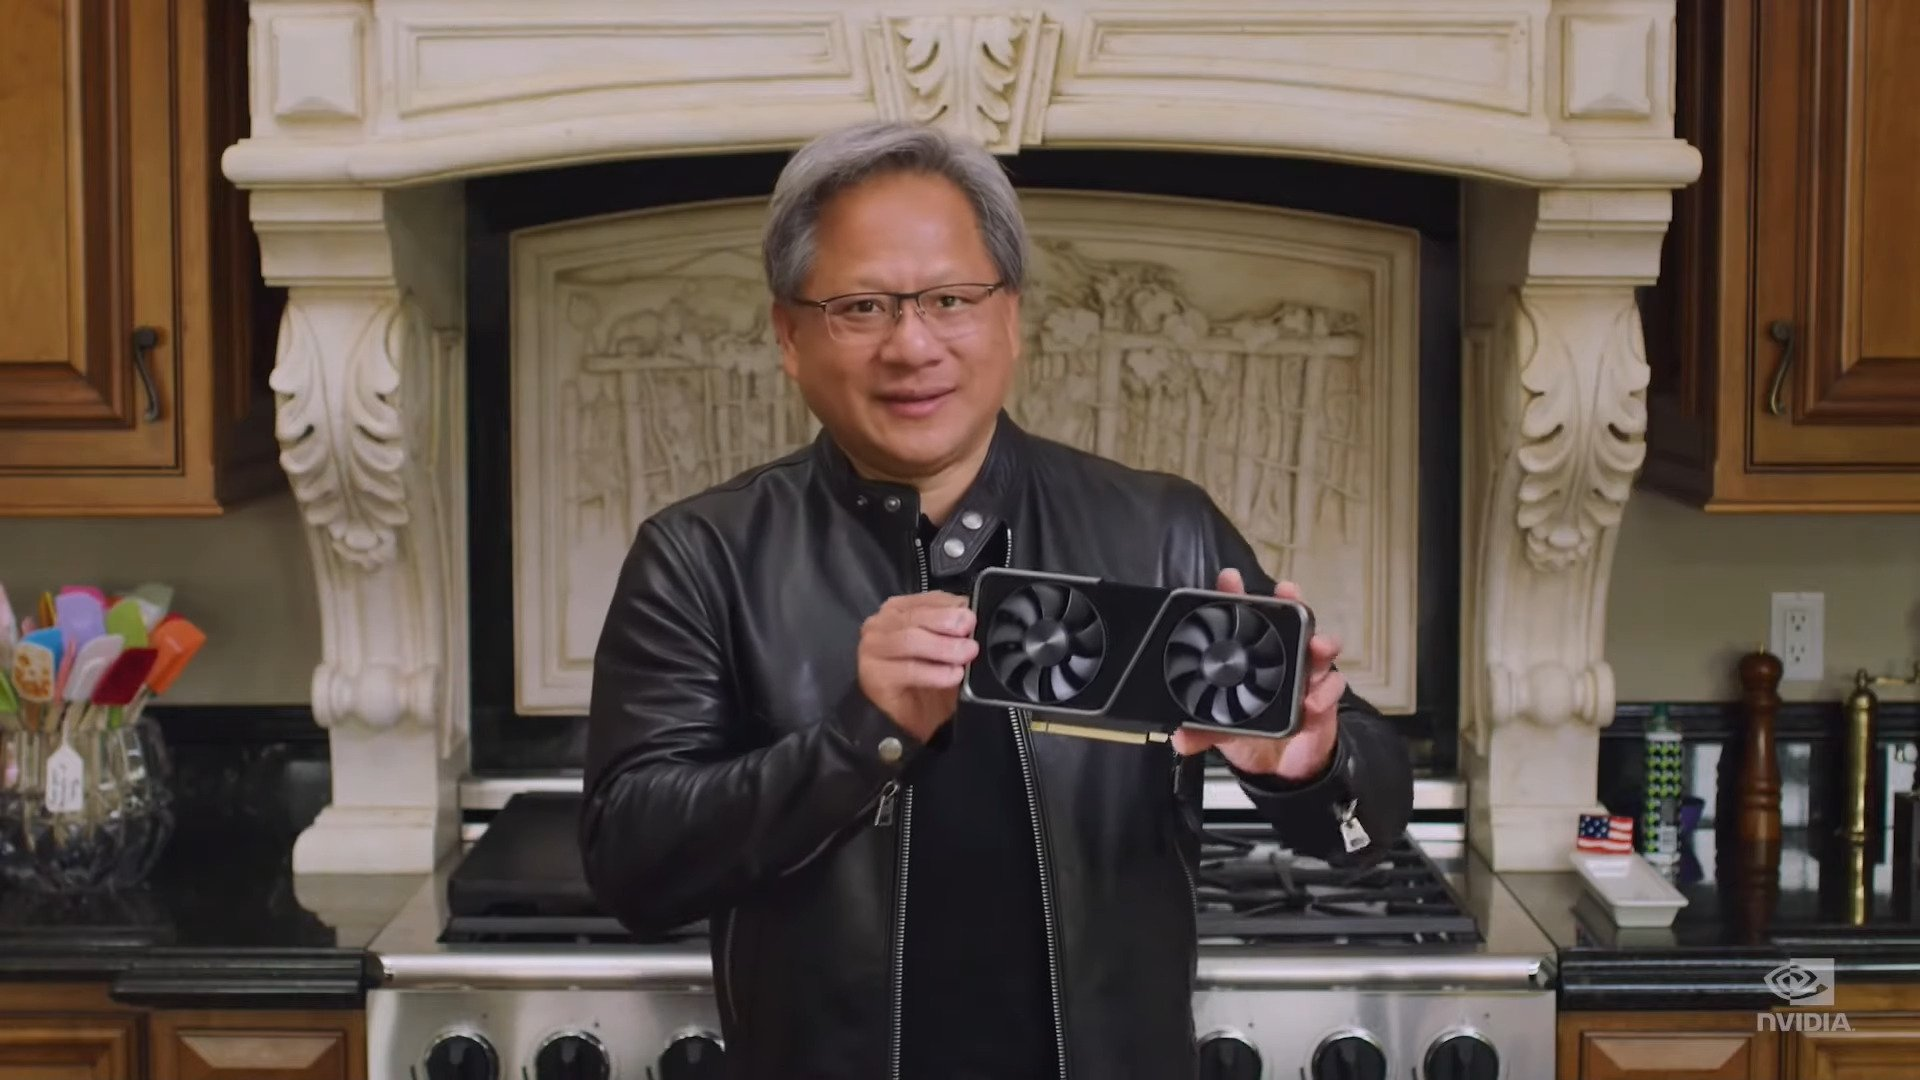 Nvidia Wins Multiple Awards In European Hardware Community Awards For New 30 Series Graphics Cards